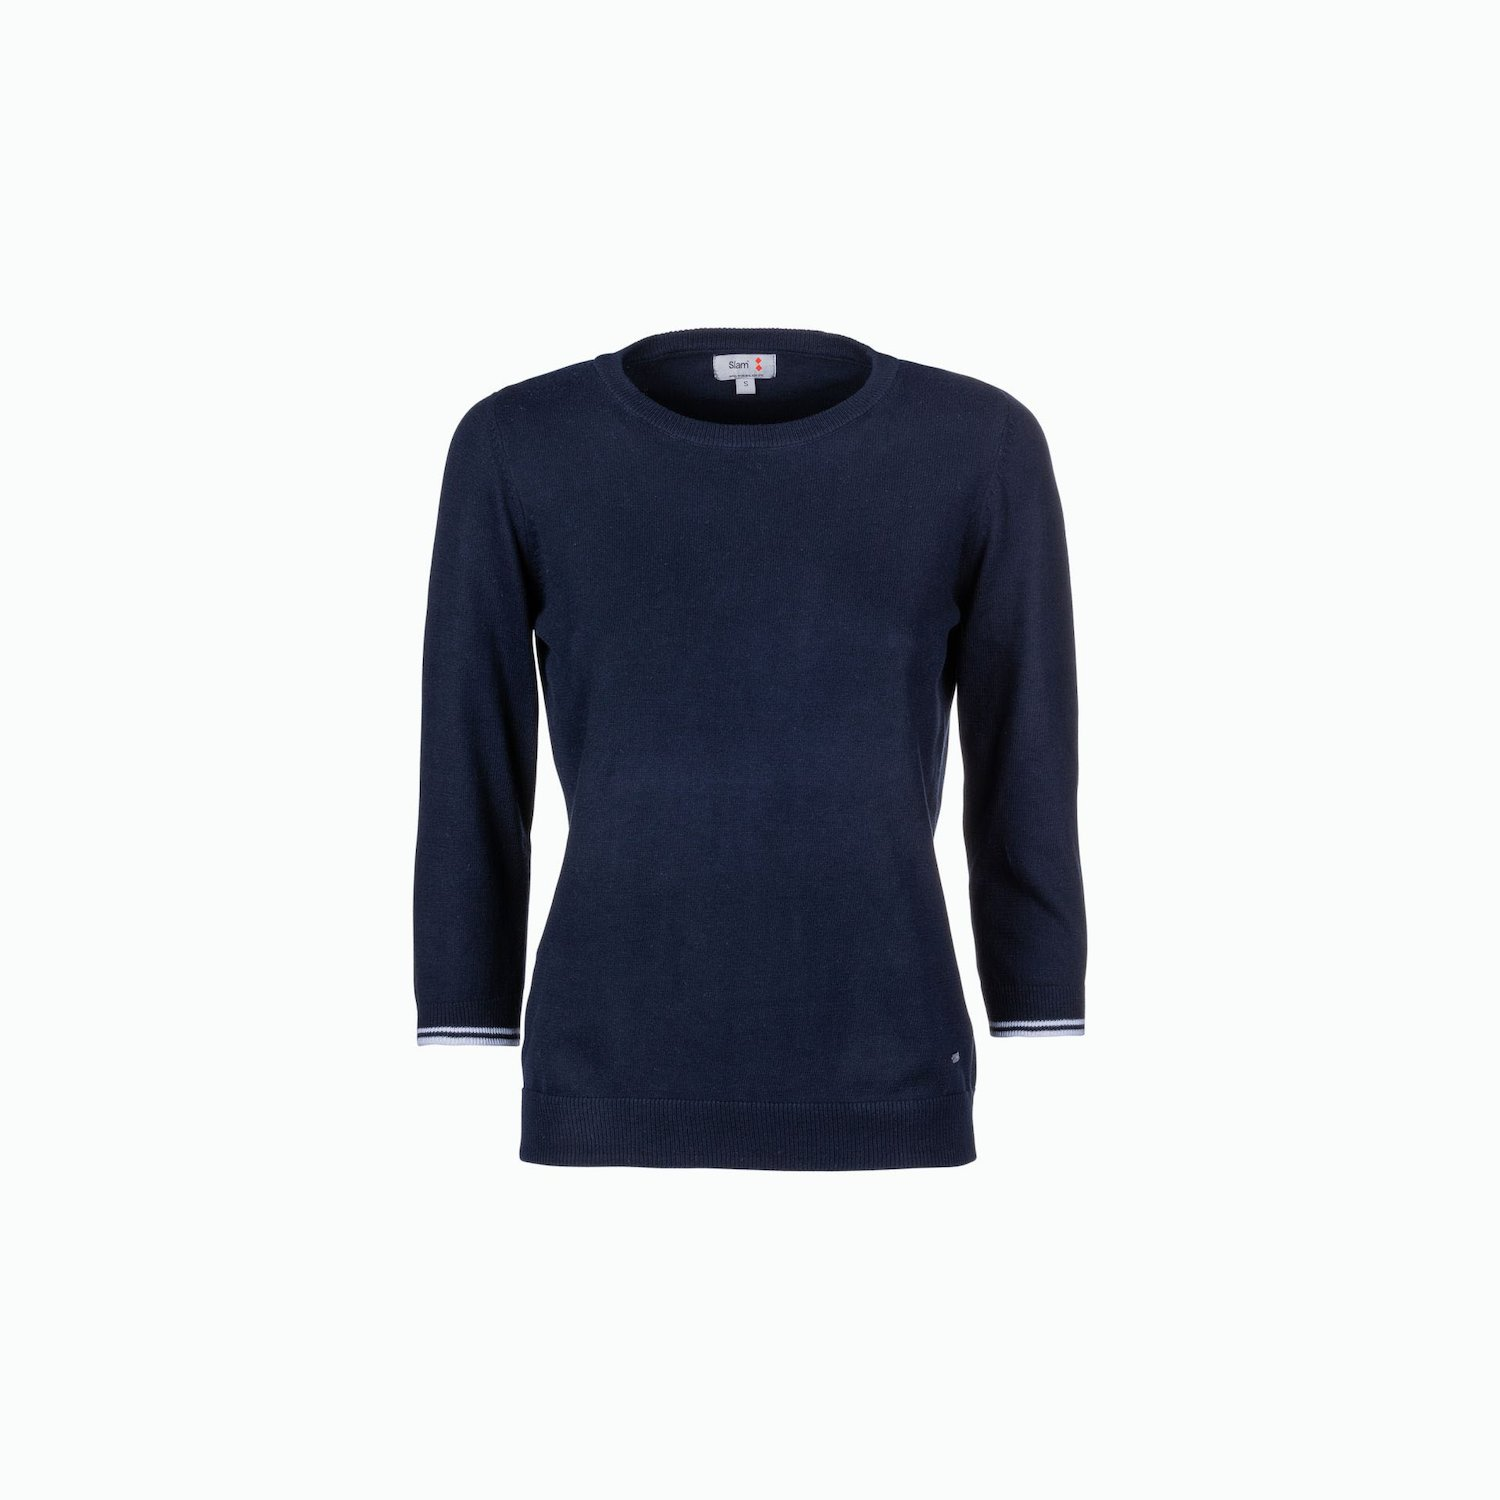 C157 Jumper - Navy